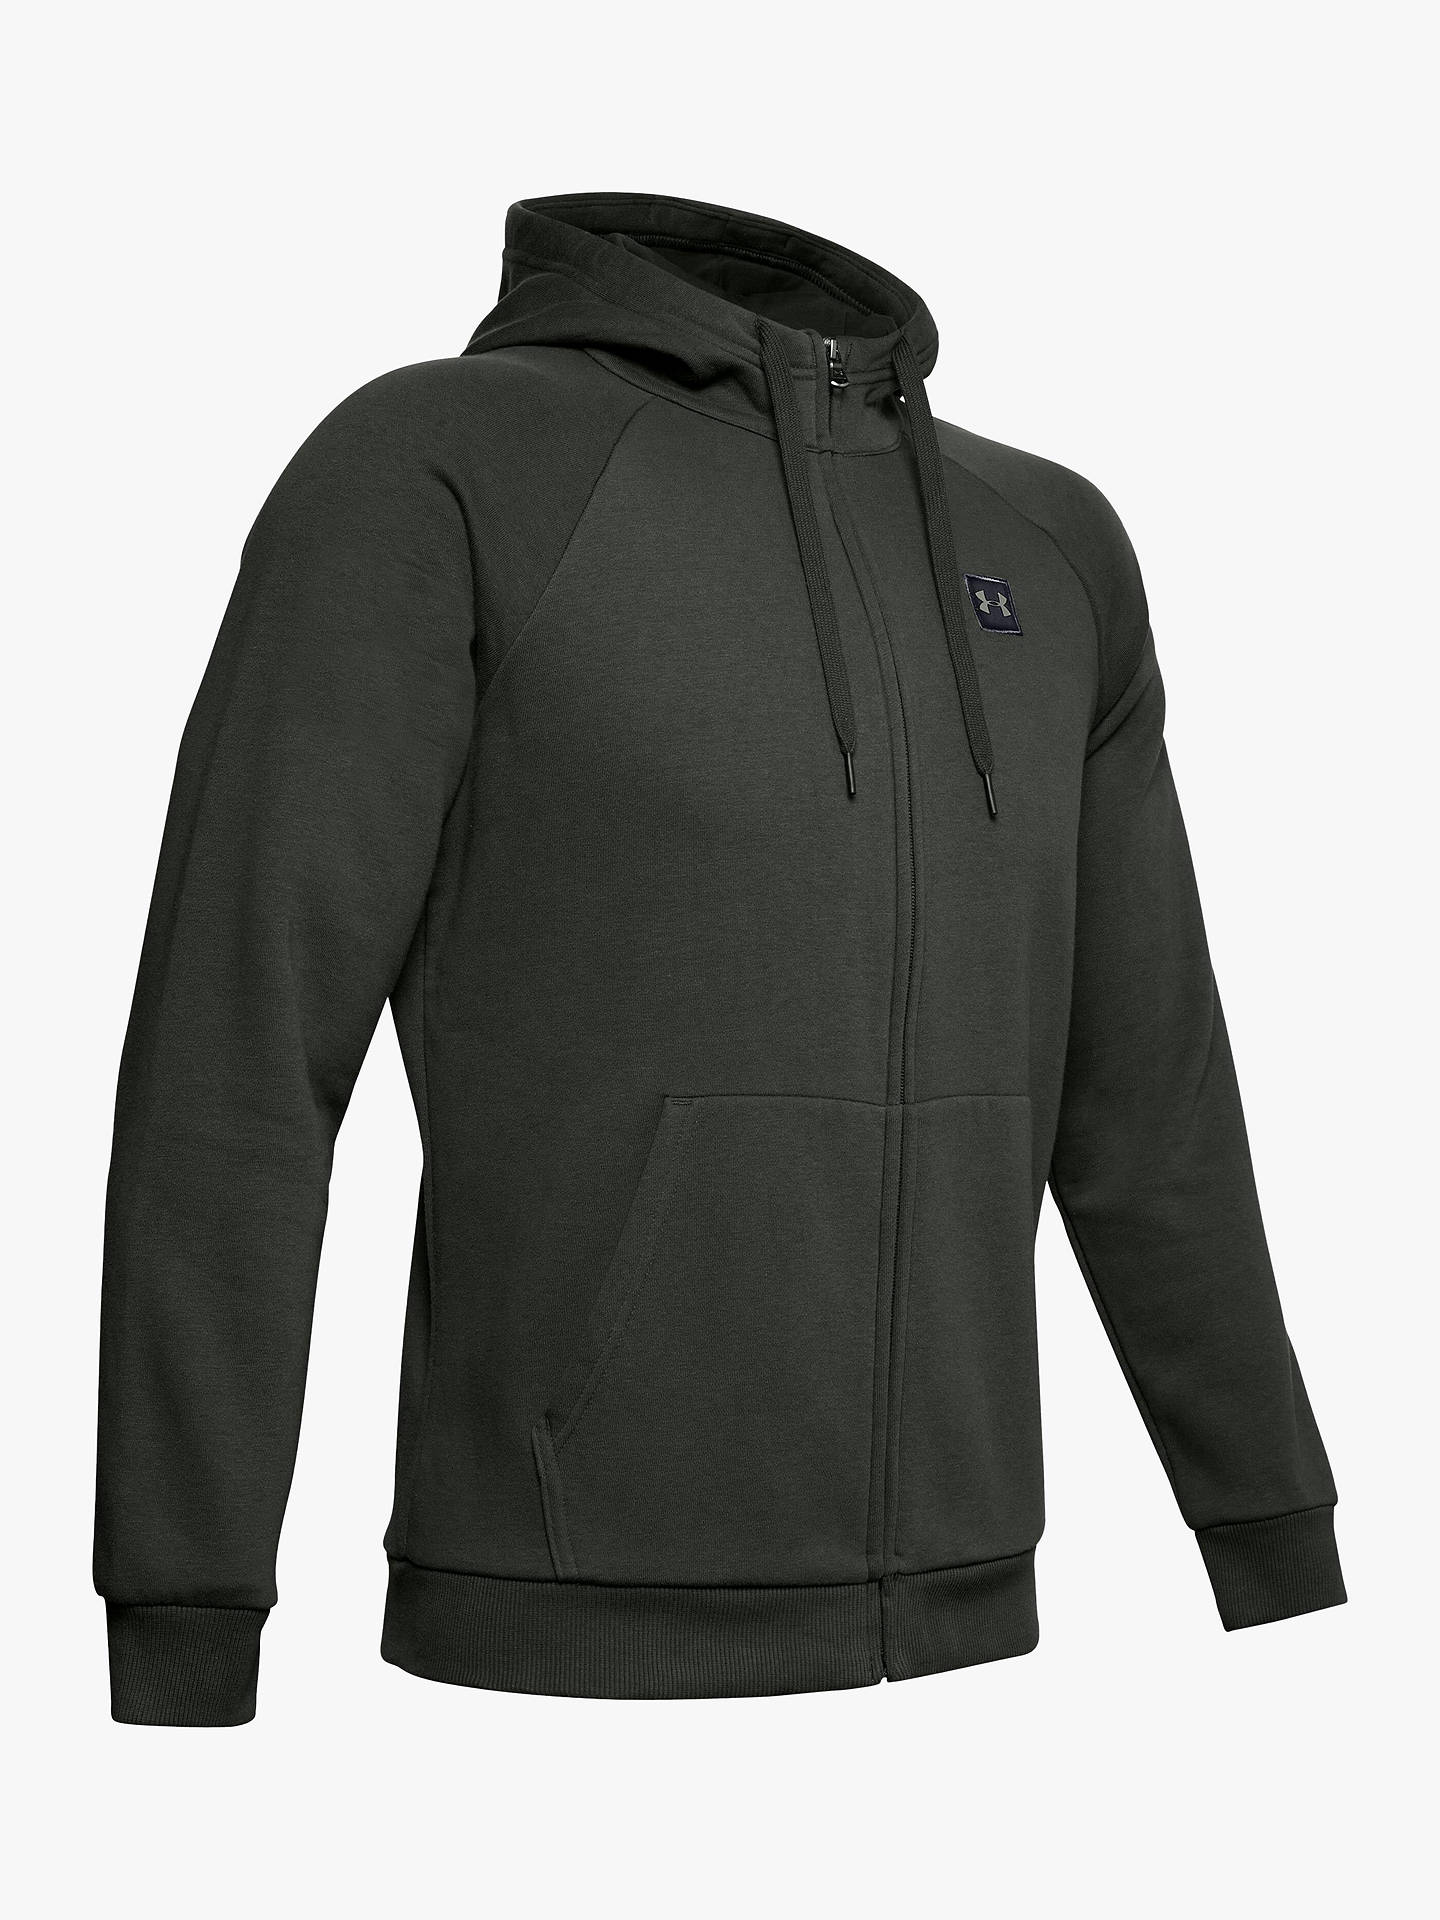 Buy Under Armour Rival Fleece Training Hoodie, Baroque Green/Black, S Online at johnlewis.com